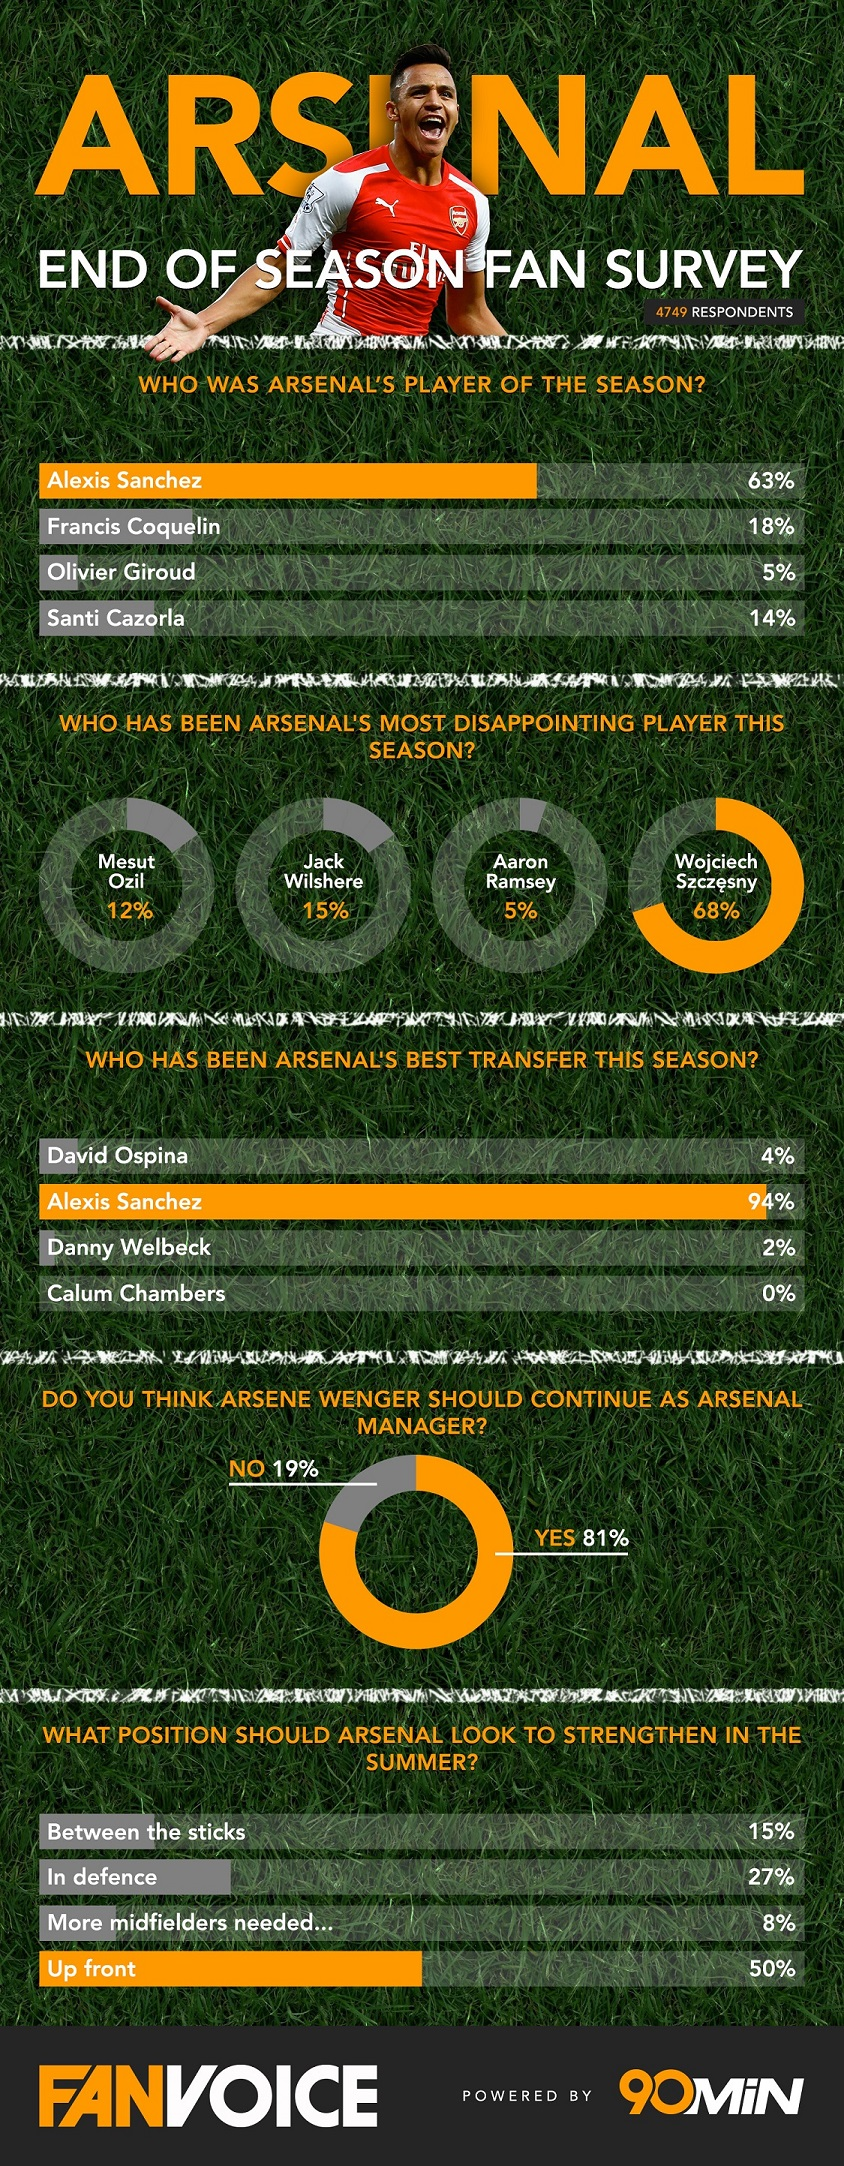 ArsenalEndOfSeasonSurvey